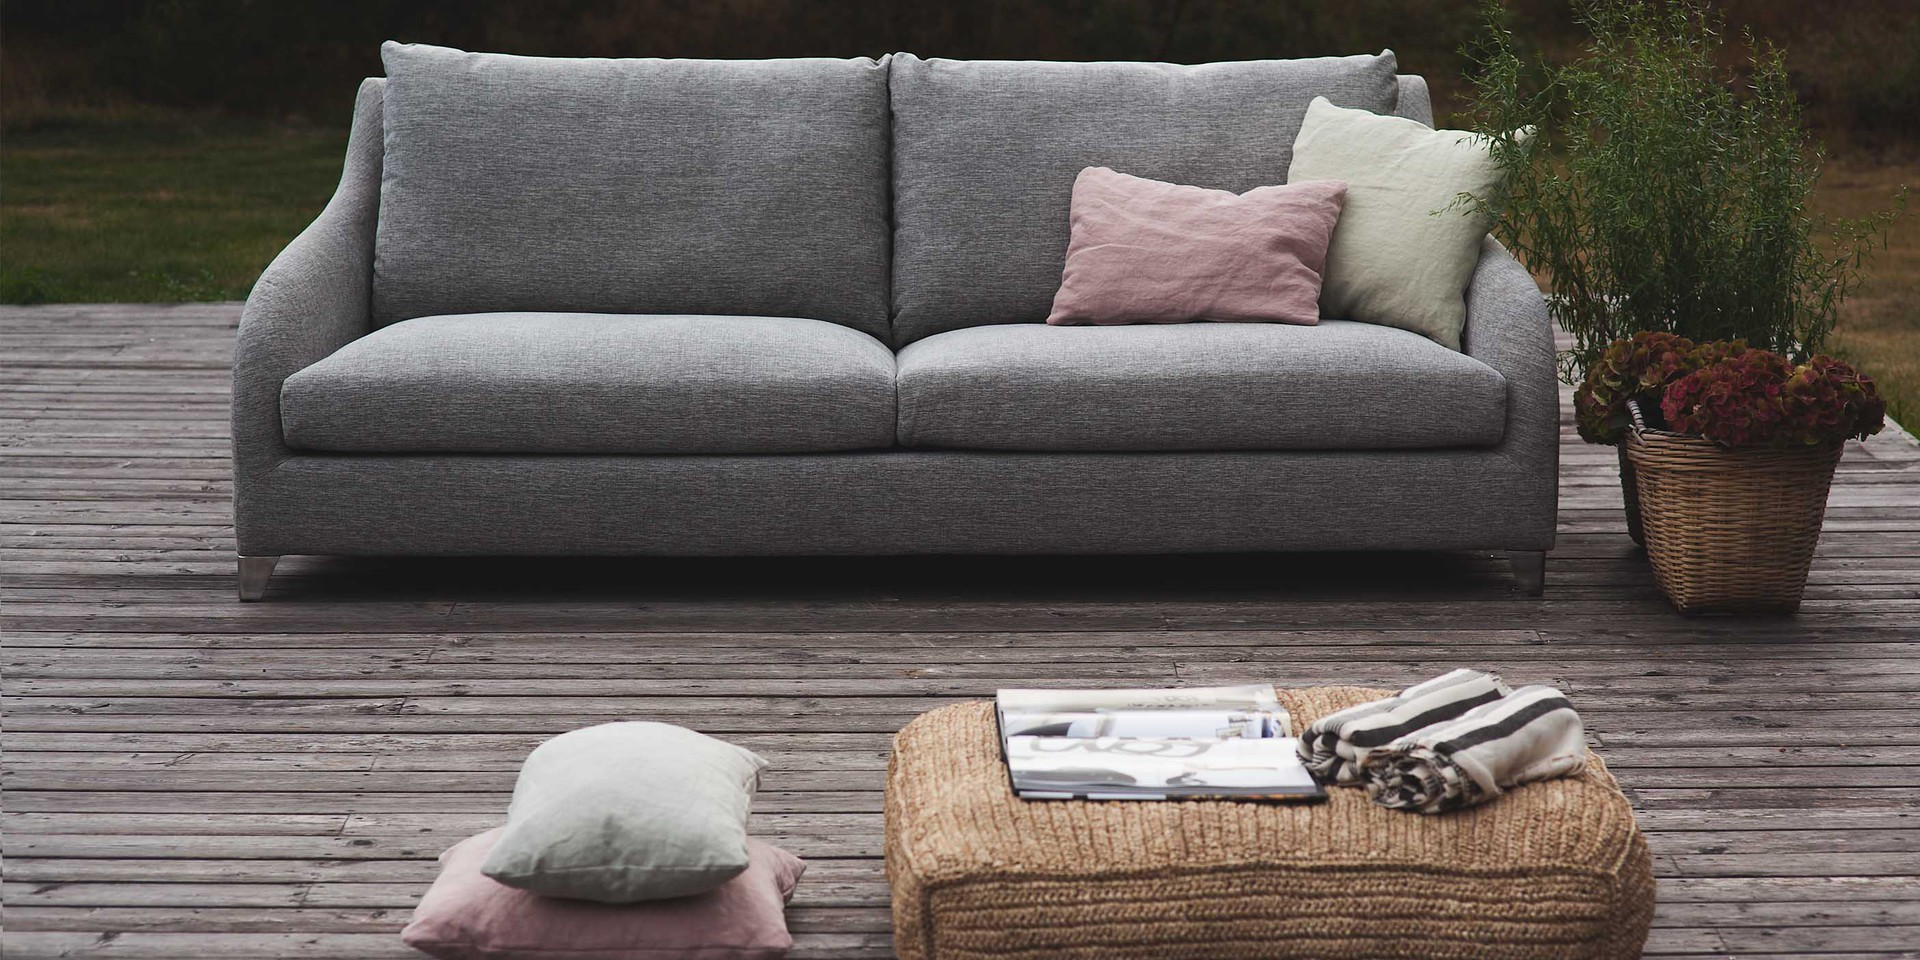 sits-lily-ambiance-arrangement_3seater_divine50_light_grey_3